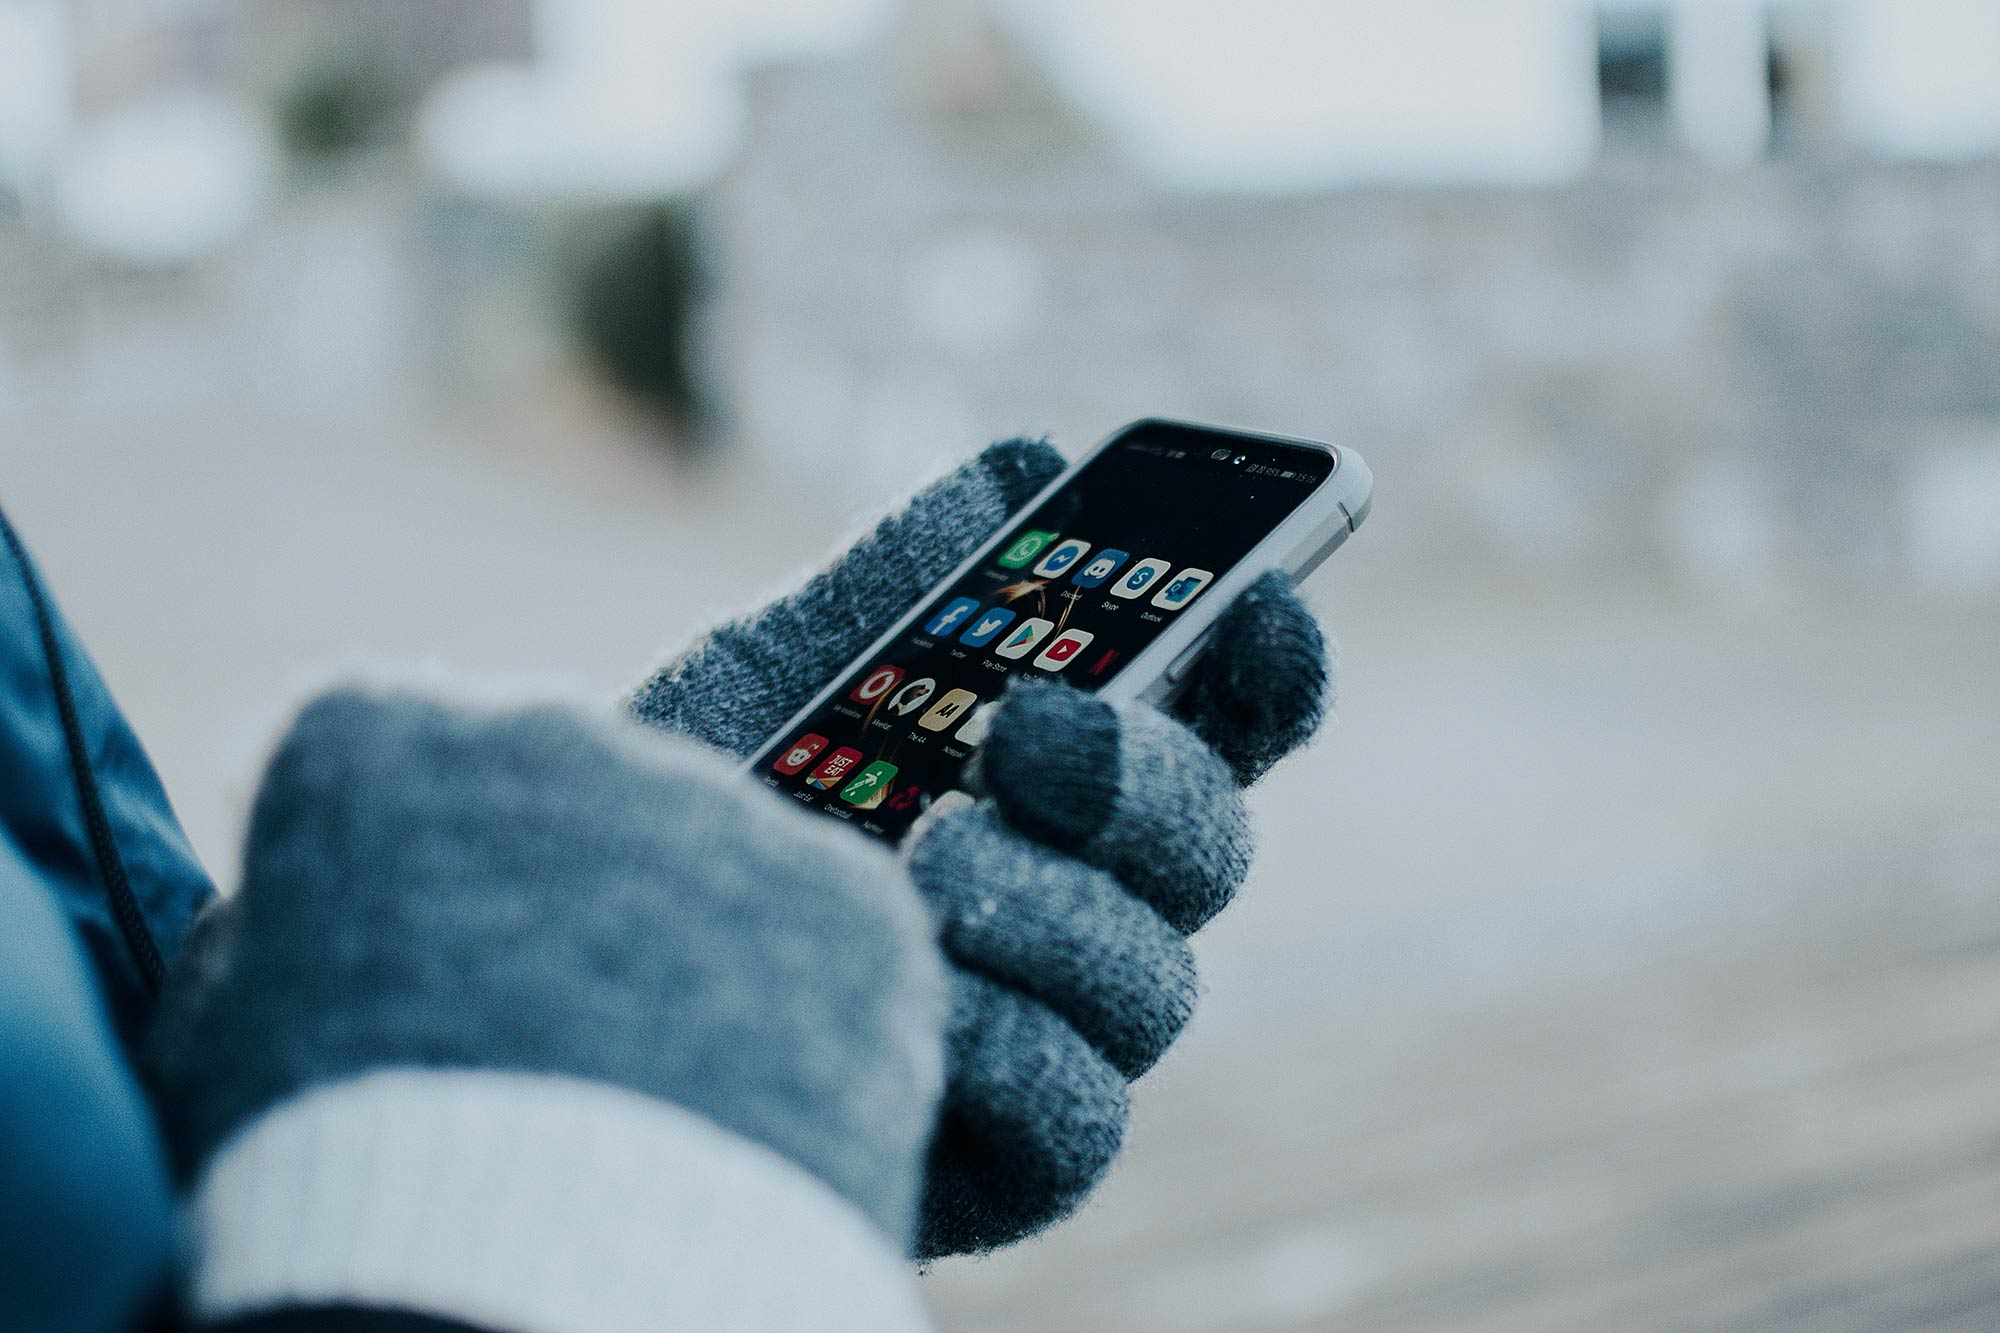 Person wearing gloves using an iPhone